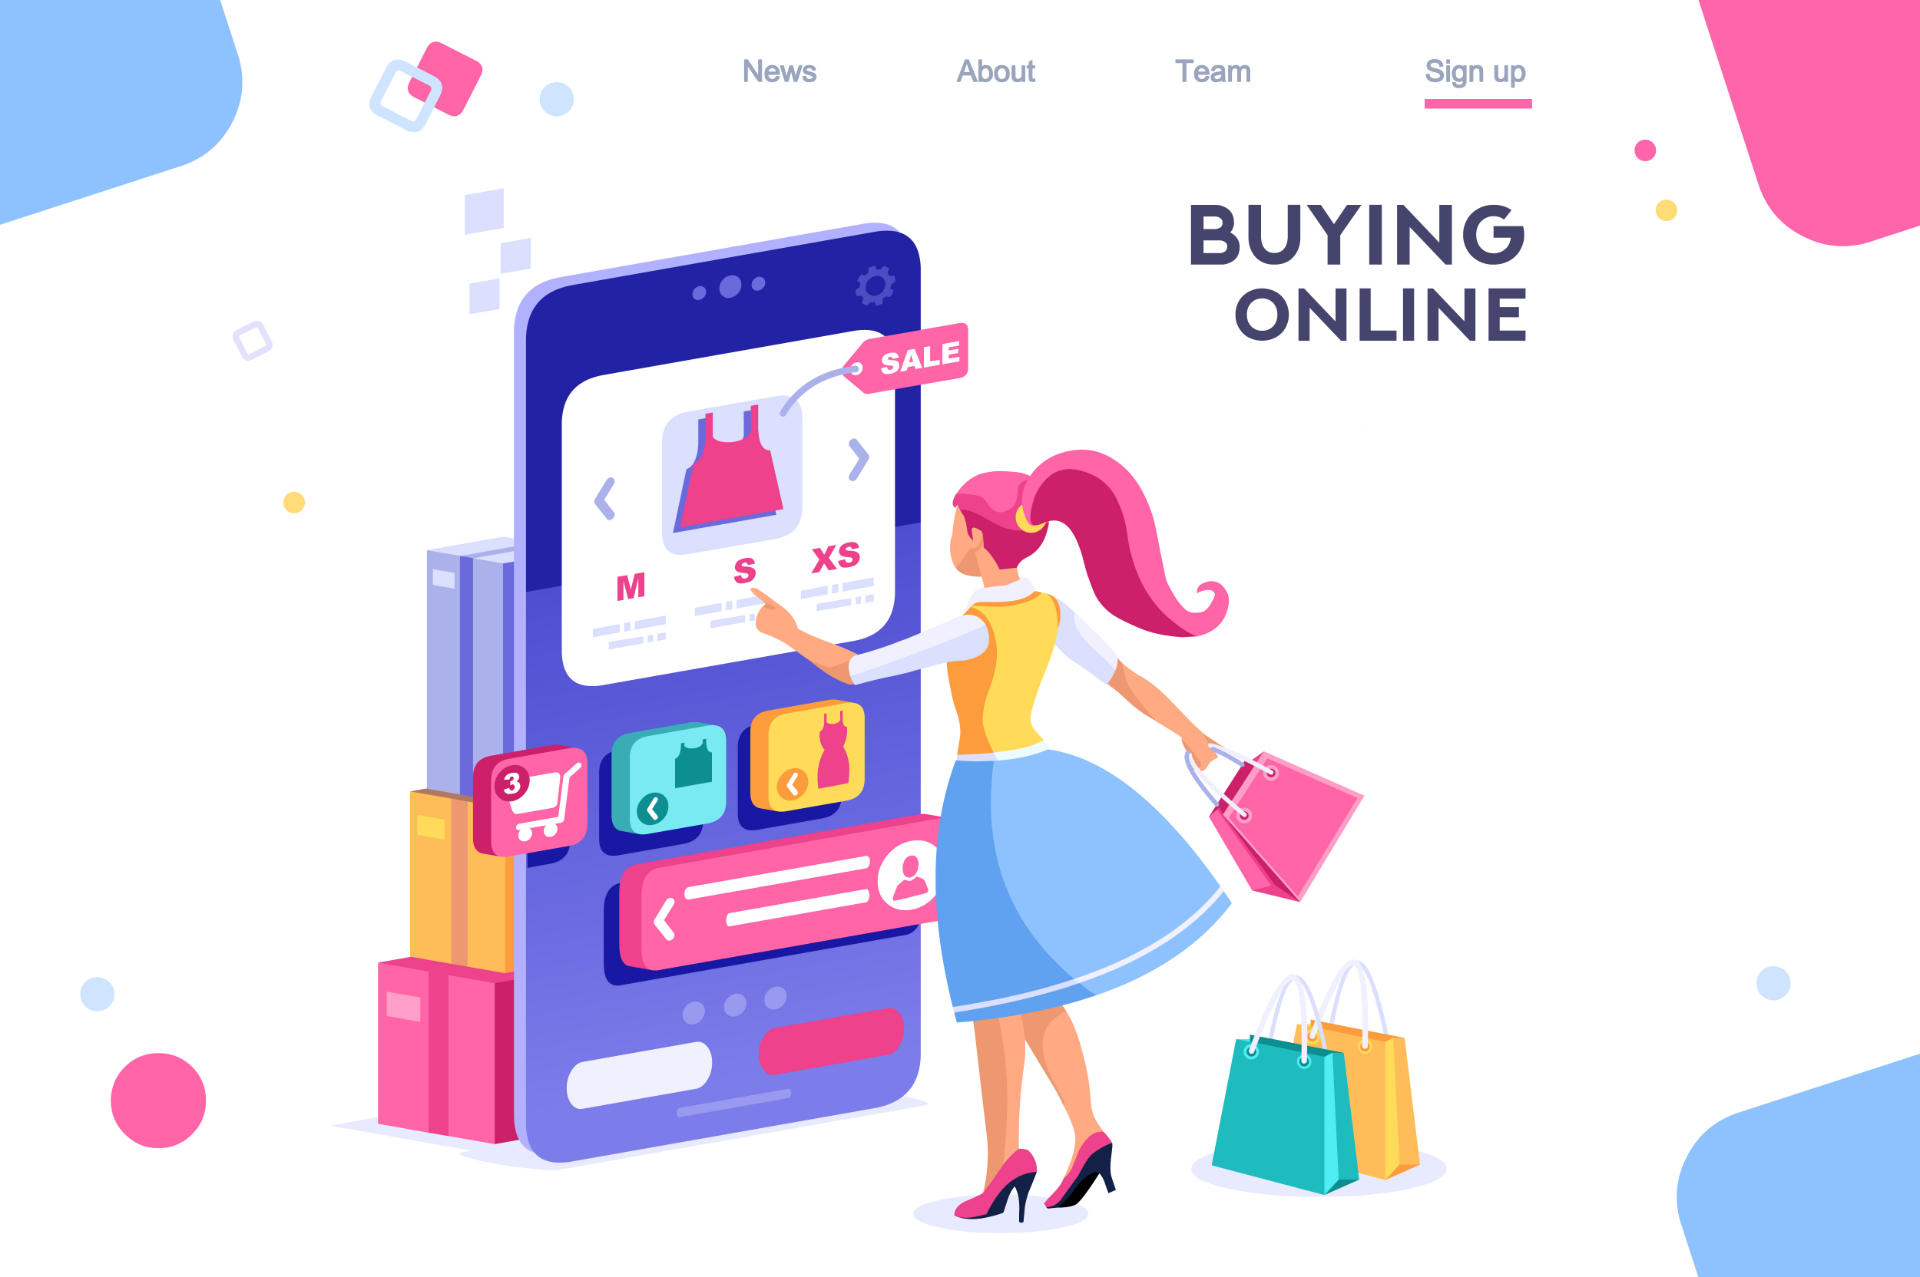 Graphic design image of woman using a checkout portal for ecommerce.